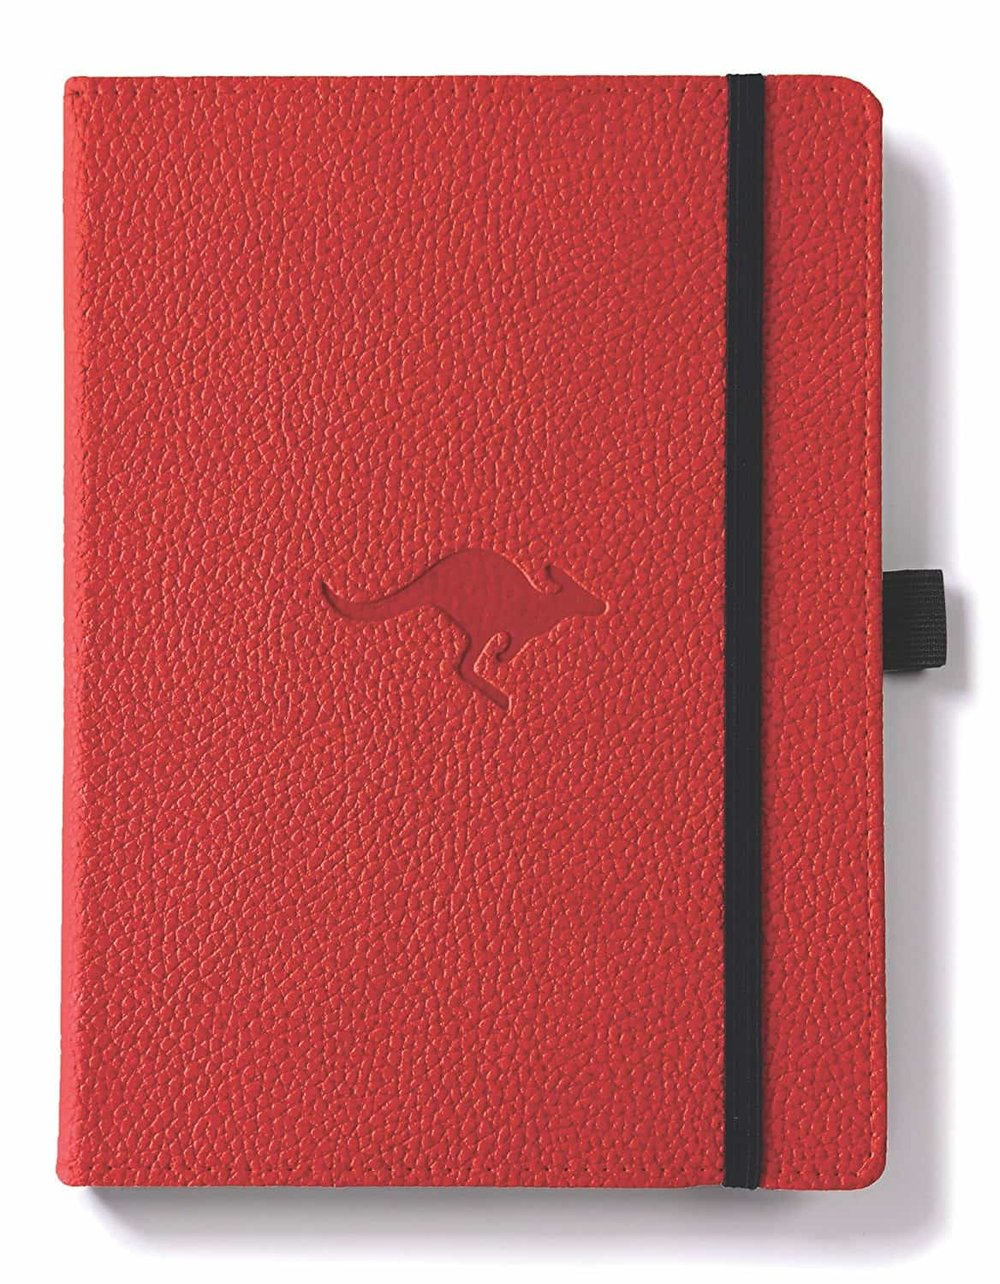 Red Kangaroo Dingbats Journal